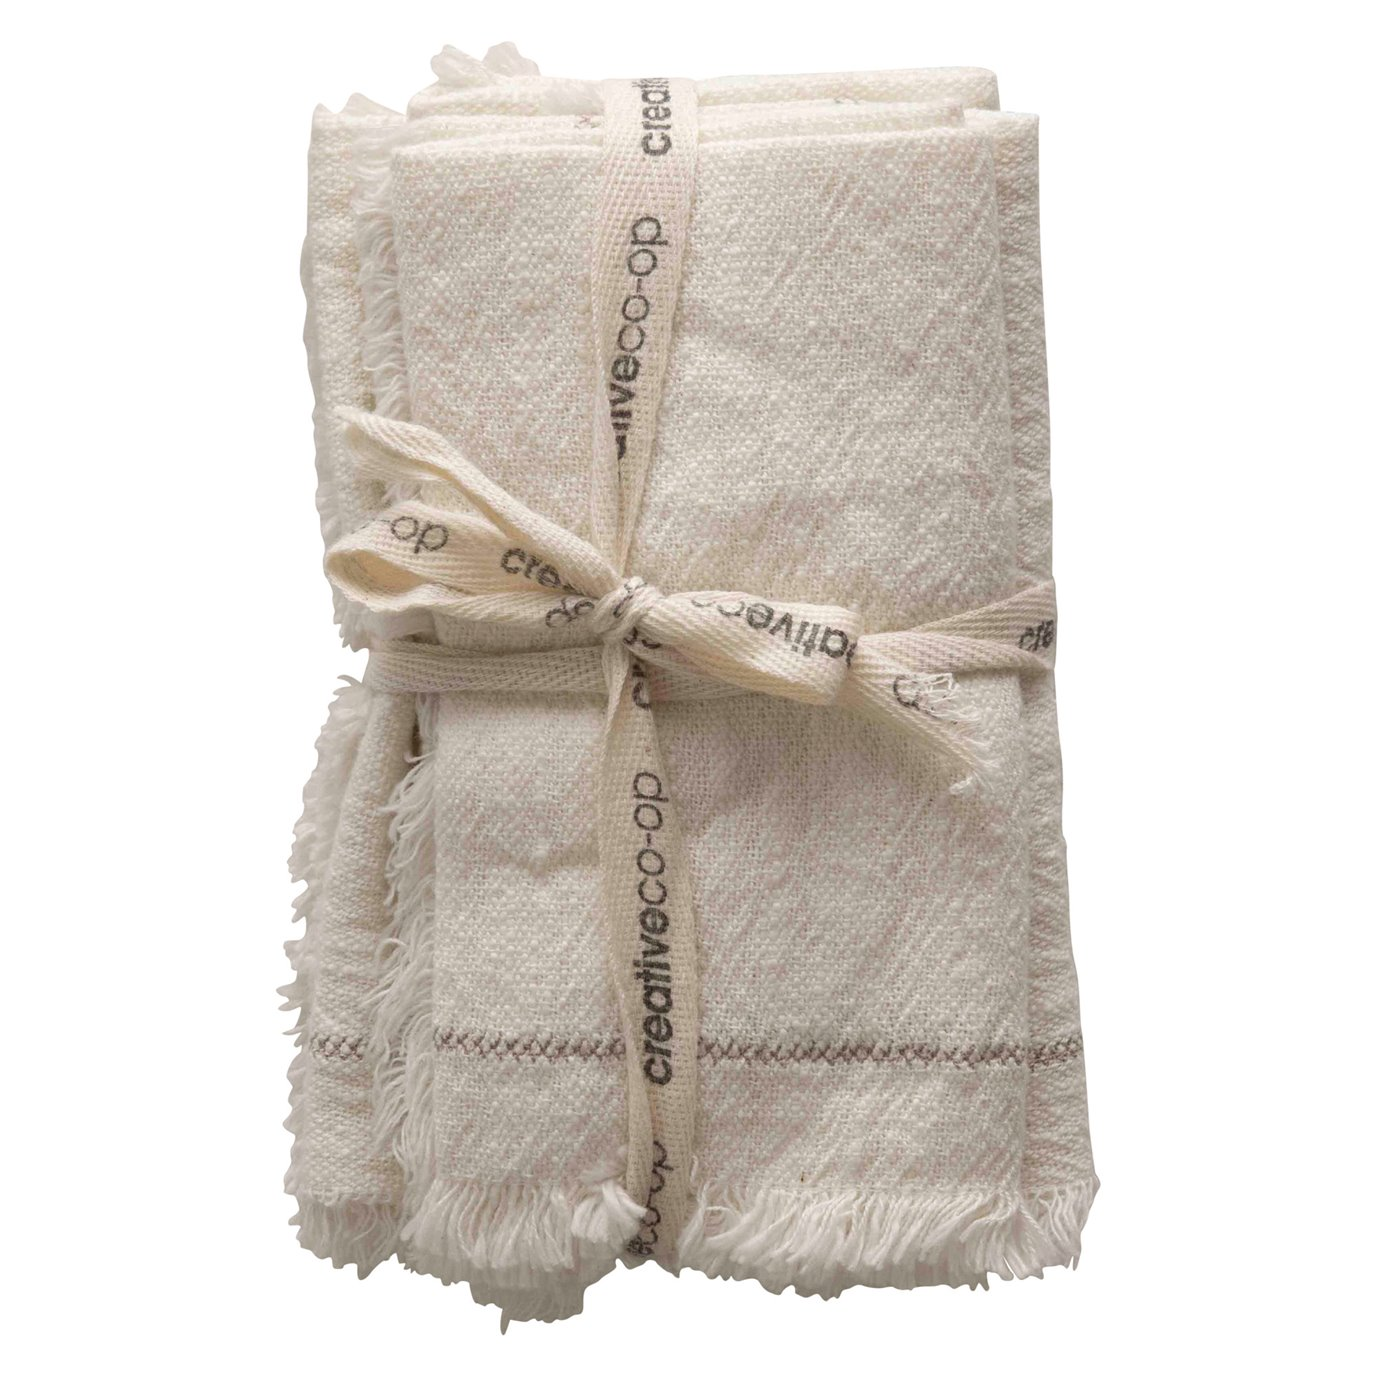 """18"""" Square Cotton Woven Napkins with Stitch Accent & Fringe (Set of 4)"""